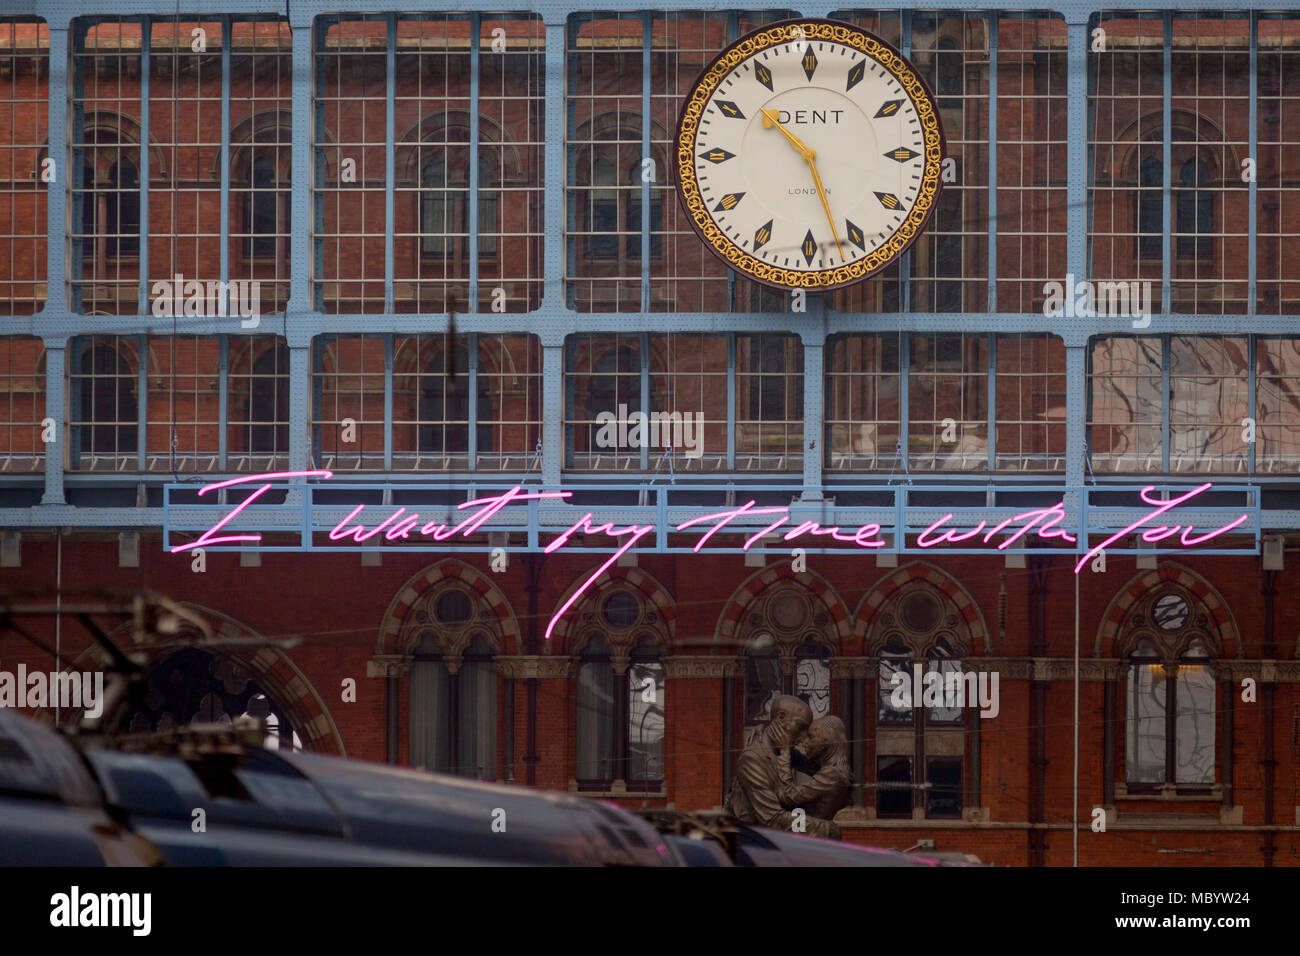 The new artwork entitled 'I Want My Time With You' by British (Britpop) artist Tracy Emin hangs over the main concourse at St. Pancras Station, on 10th April 2018, in London, England. In the sixth year of the Terrace Wires Commission - and in celebration of the 150th anniversary of St Pancras International and the 250th anniversary of the Royal Academy of Arts, at one of London's mainline station, the London hub for Eurostar - the 20 metre-long greeting to commuters reads 'I Want My Time With You' and Emin thinks that arriving by train and being met by a lover as they put their arms around the - Stock Image